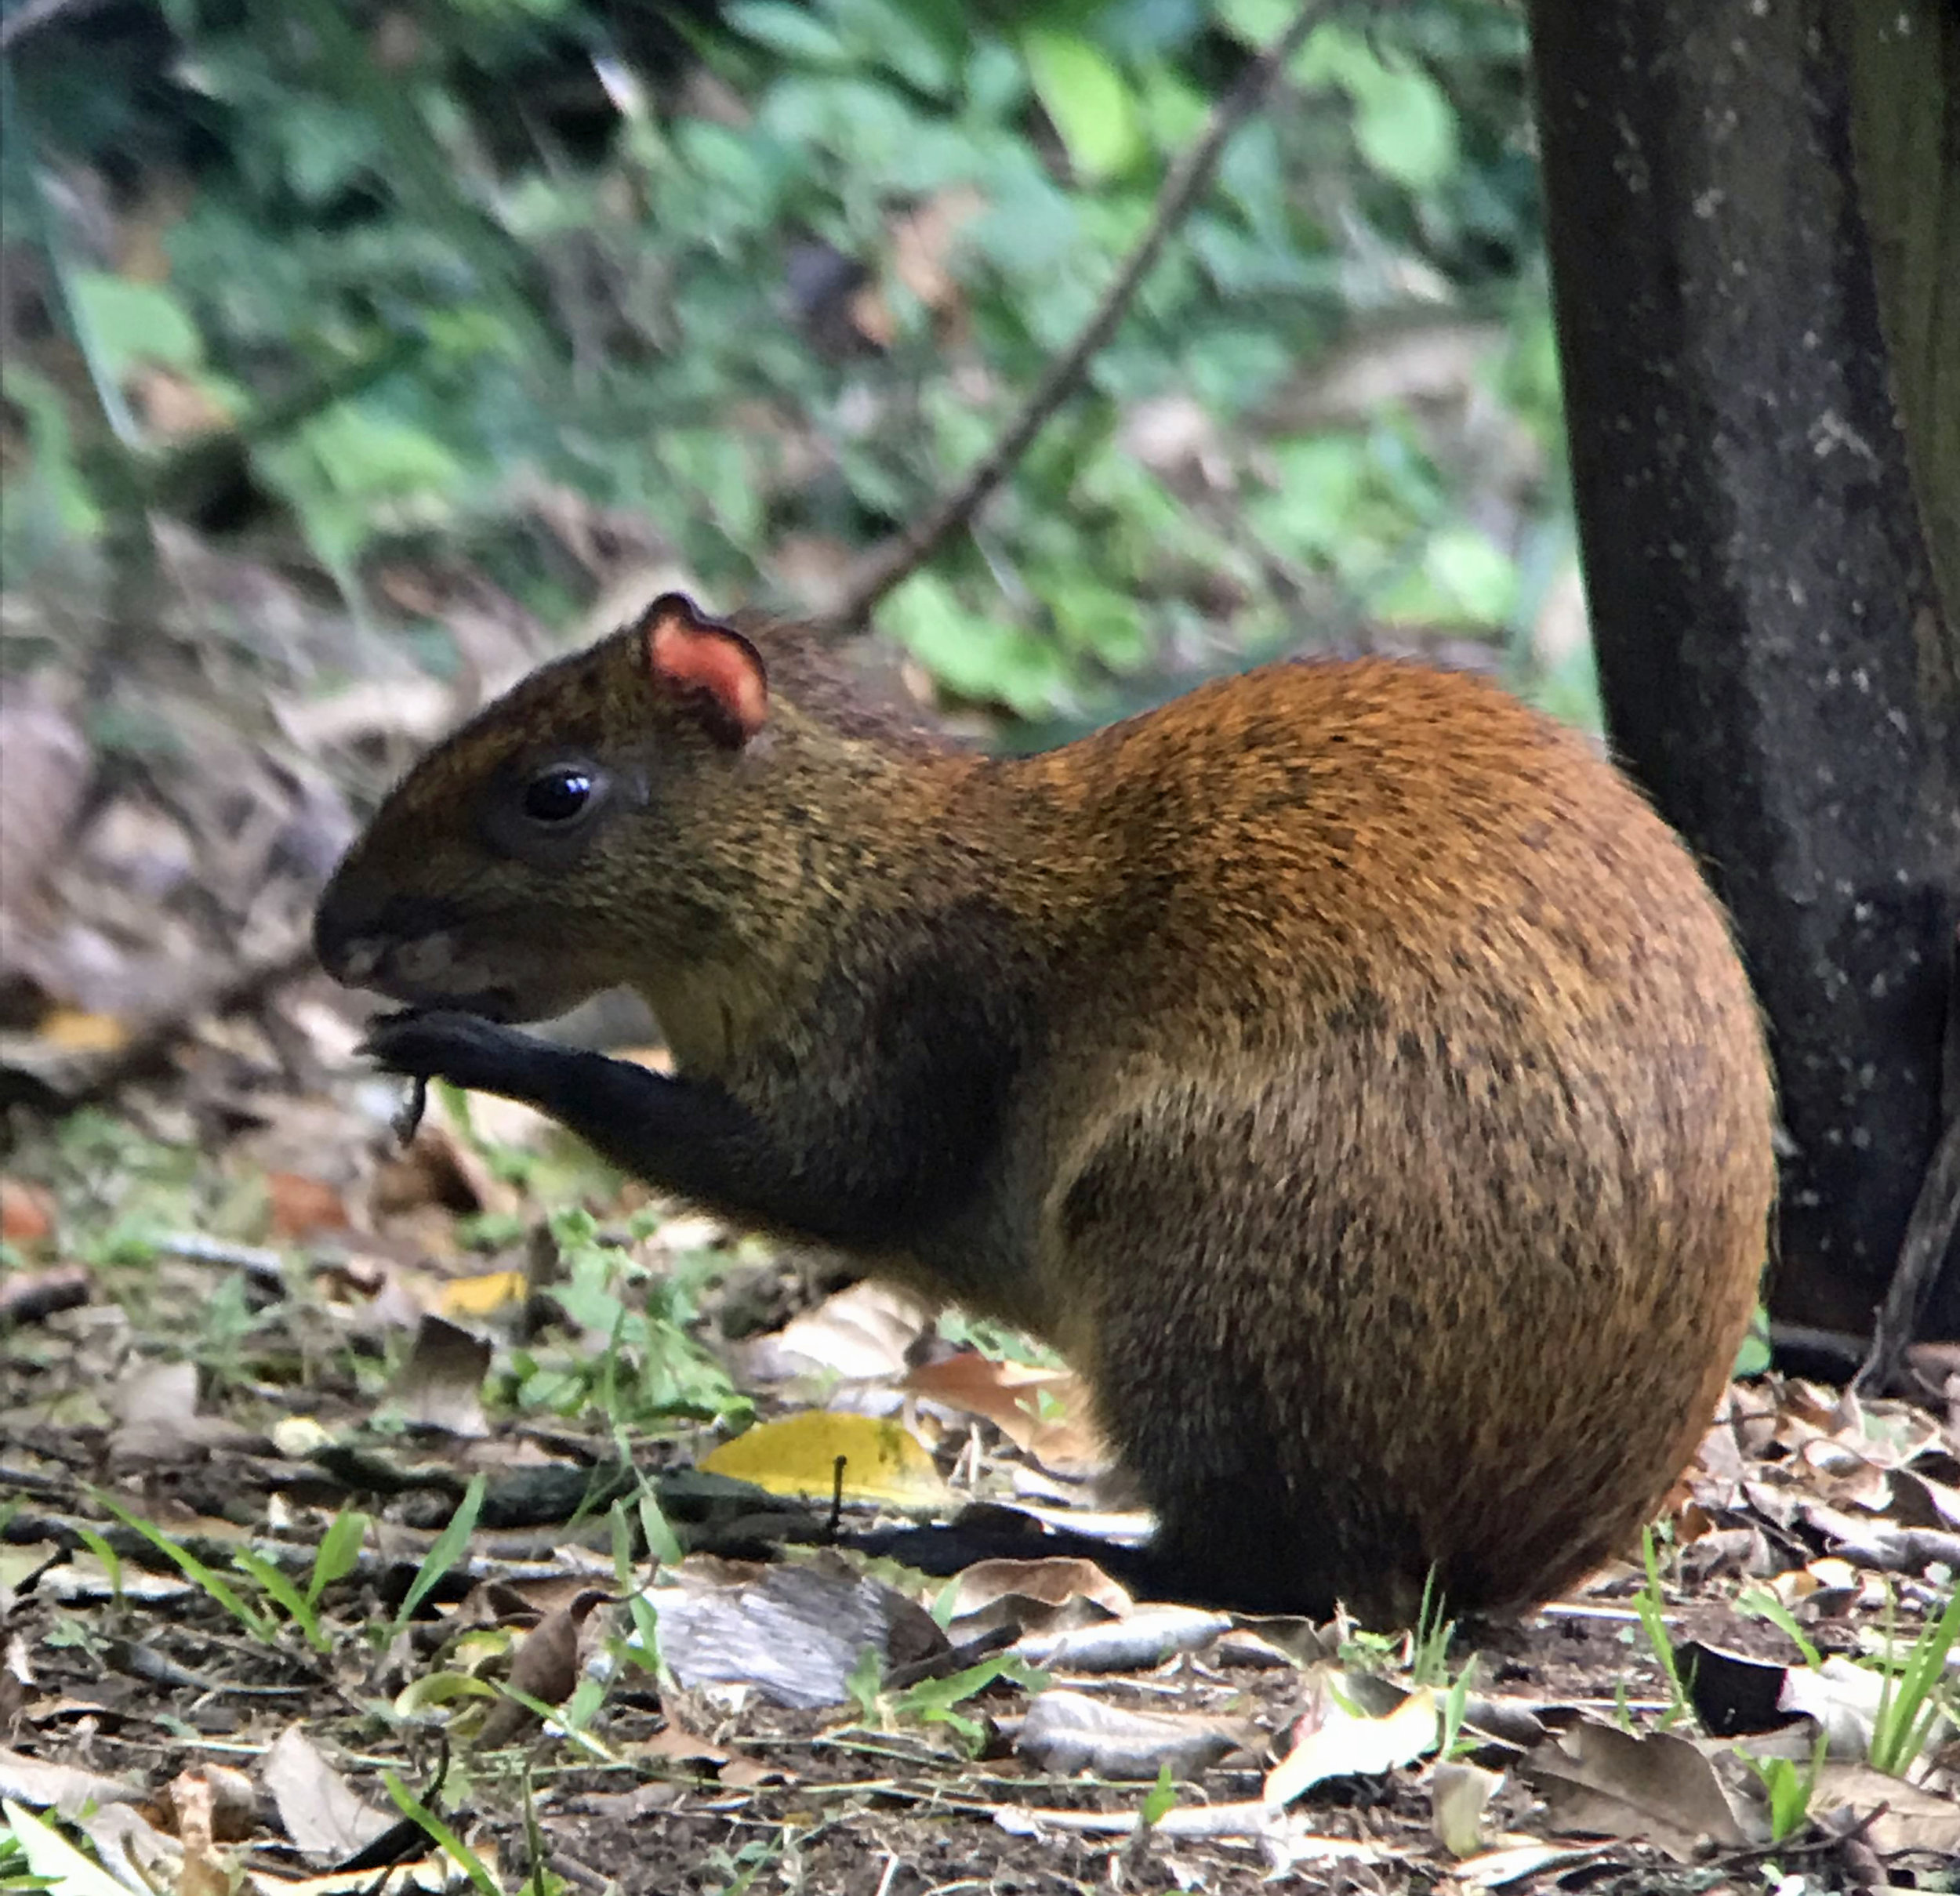 This little agouti was a very avid snacker.  We also saw kinkajous, coatis, and peccaries (a rare sight!).  It was incredibly helpful to have a knowledgeable guide on our nature walks, to tell us about the animals and help spot them.